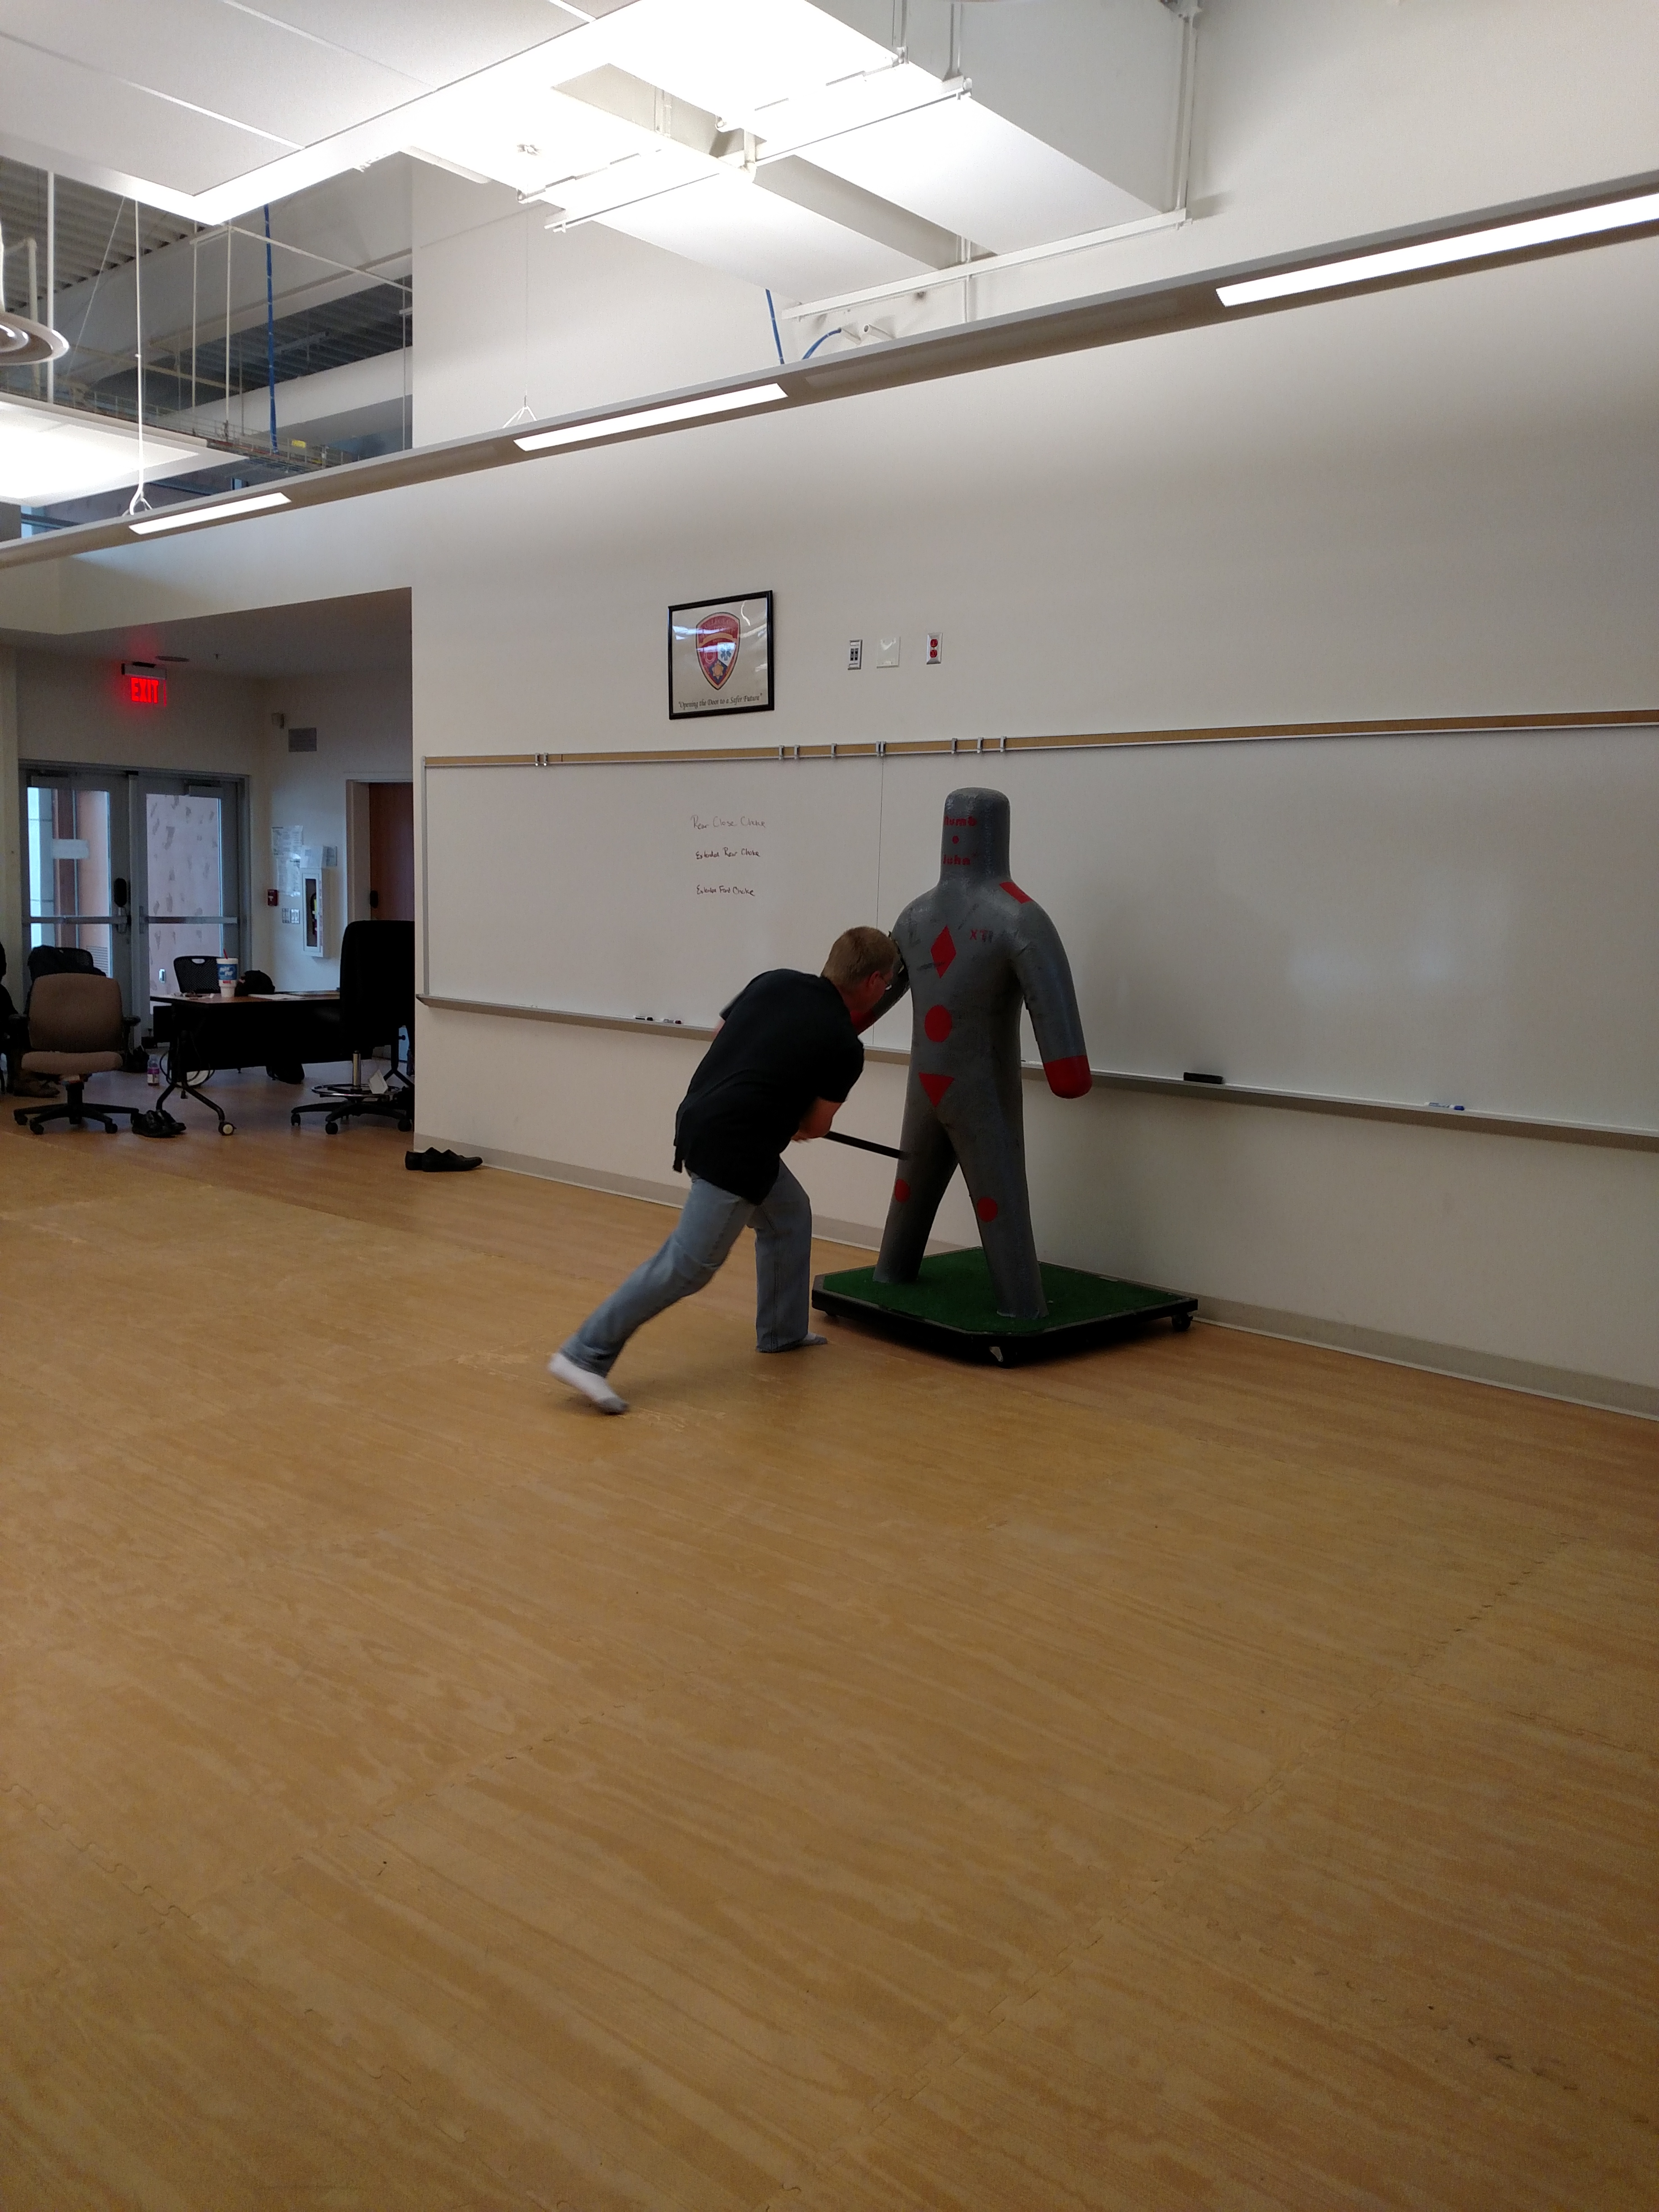 Student practicing take down methods with club